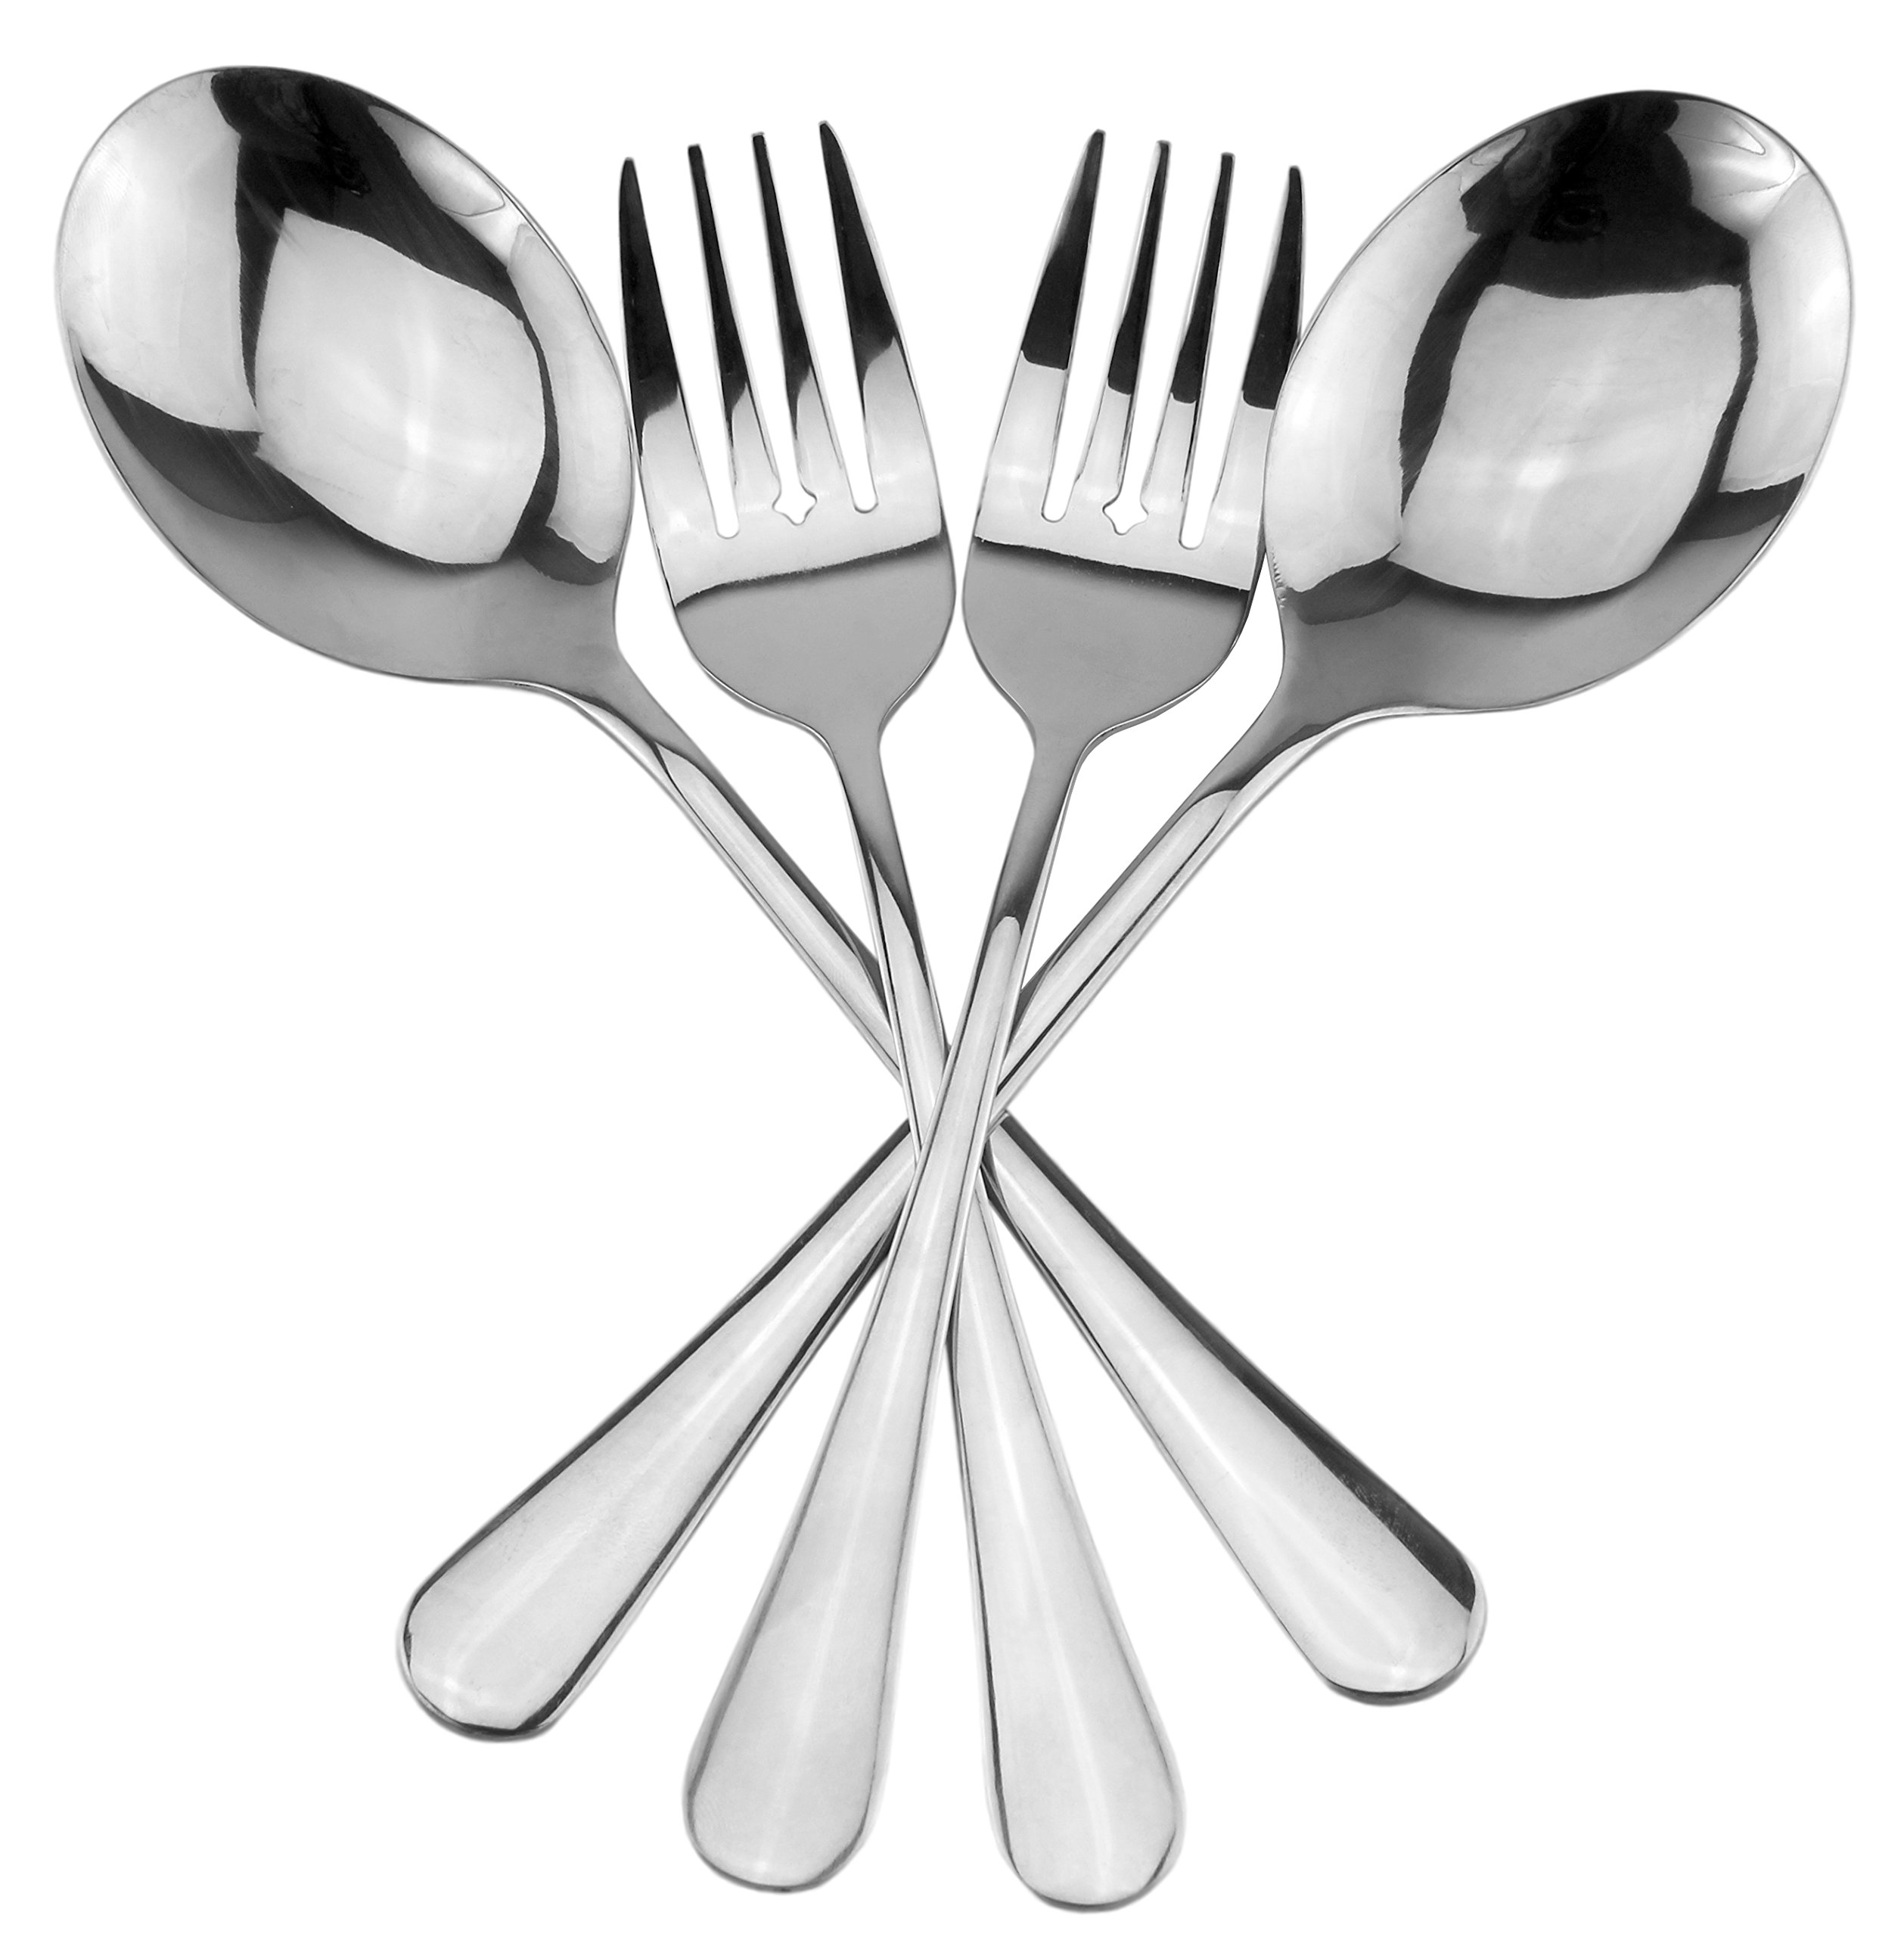 Serving Spoons & Large Serving Forks Set (4 pack, 2 of each); Buffet & Banquet Style Elegant Classic Serving Utensils, Durable Stainless Steel w/Mirrored Finish (4-piece set) by Cornucopia Brands